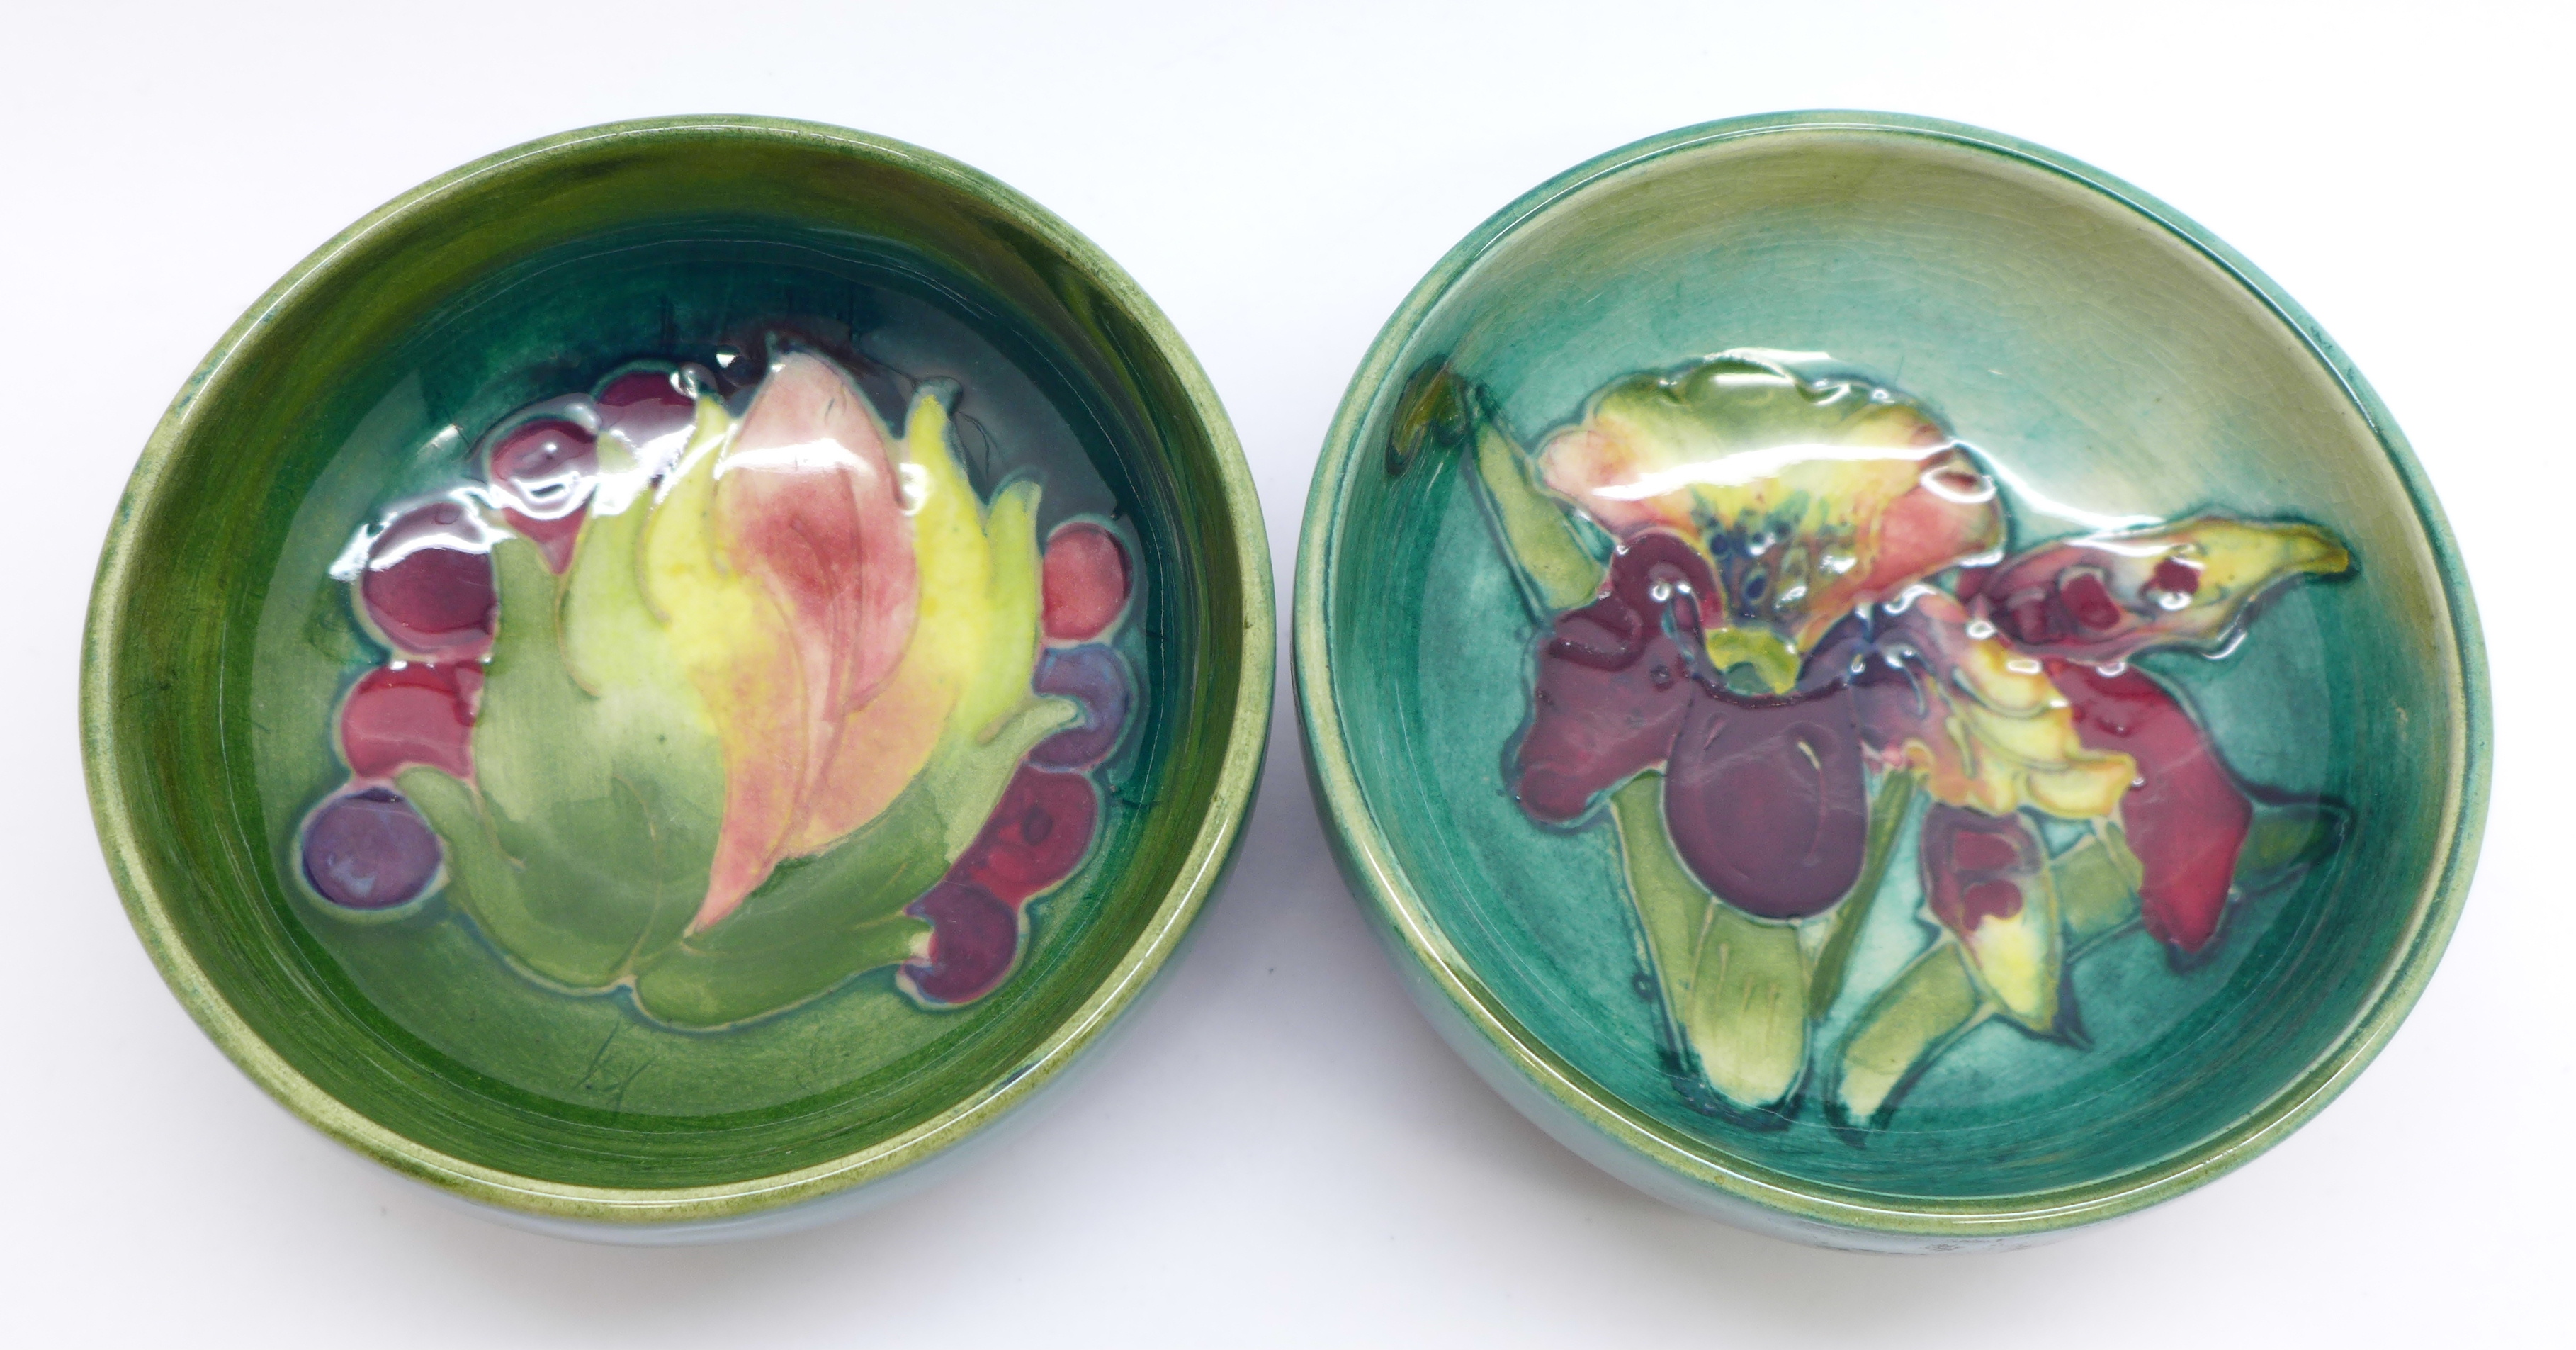 Two small Moorcroft bowls, Leaves and Fruit and orchid, 8cm diameter, (159,162) - Image 2 of 6